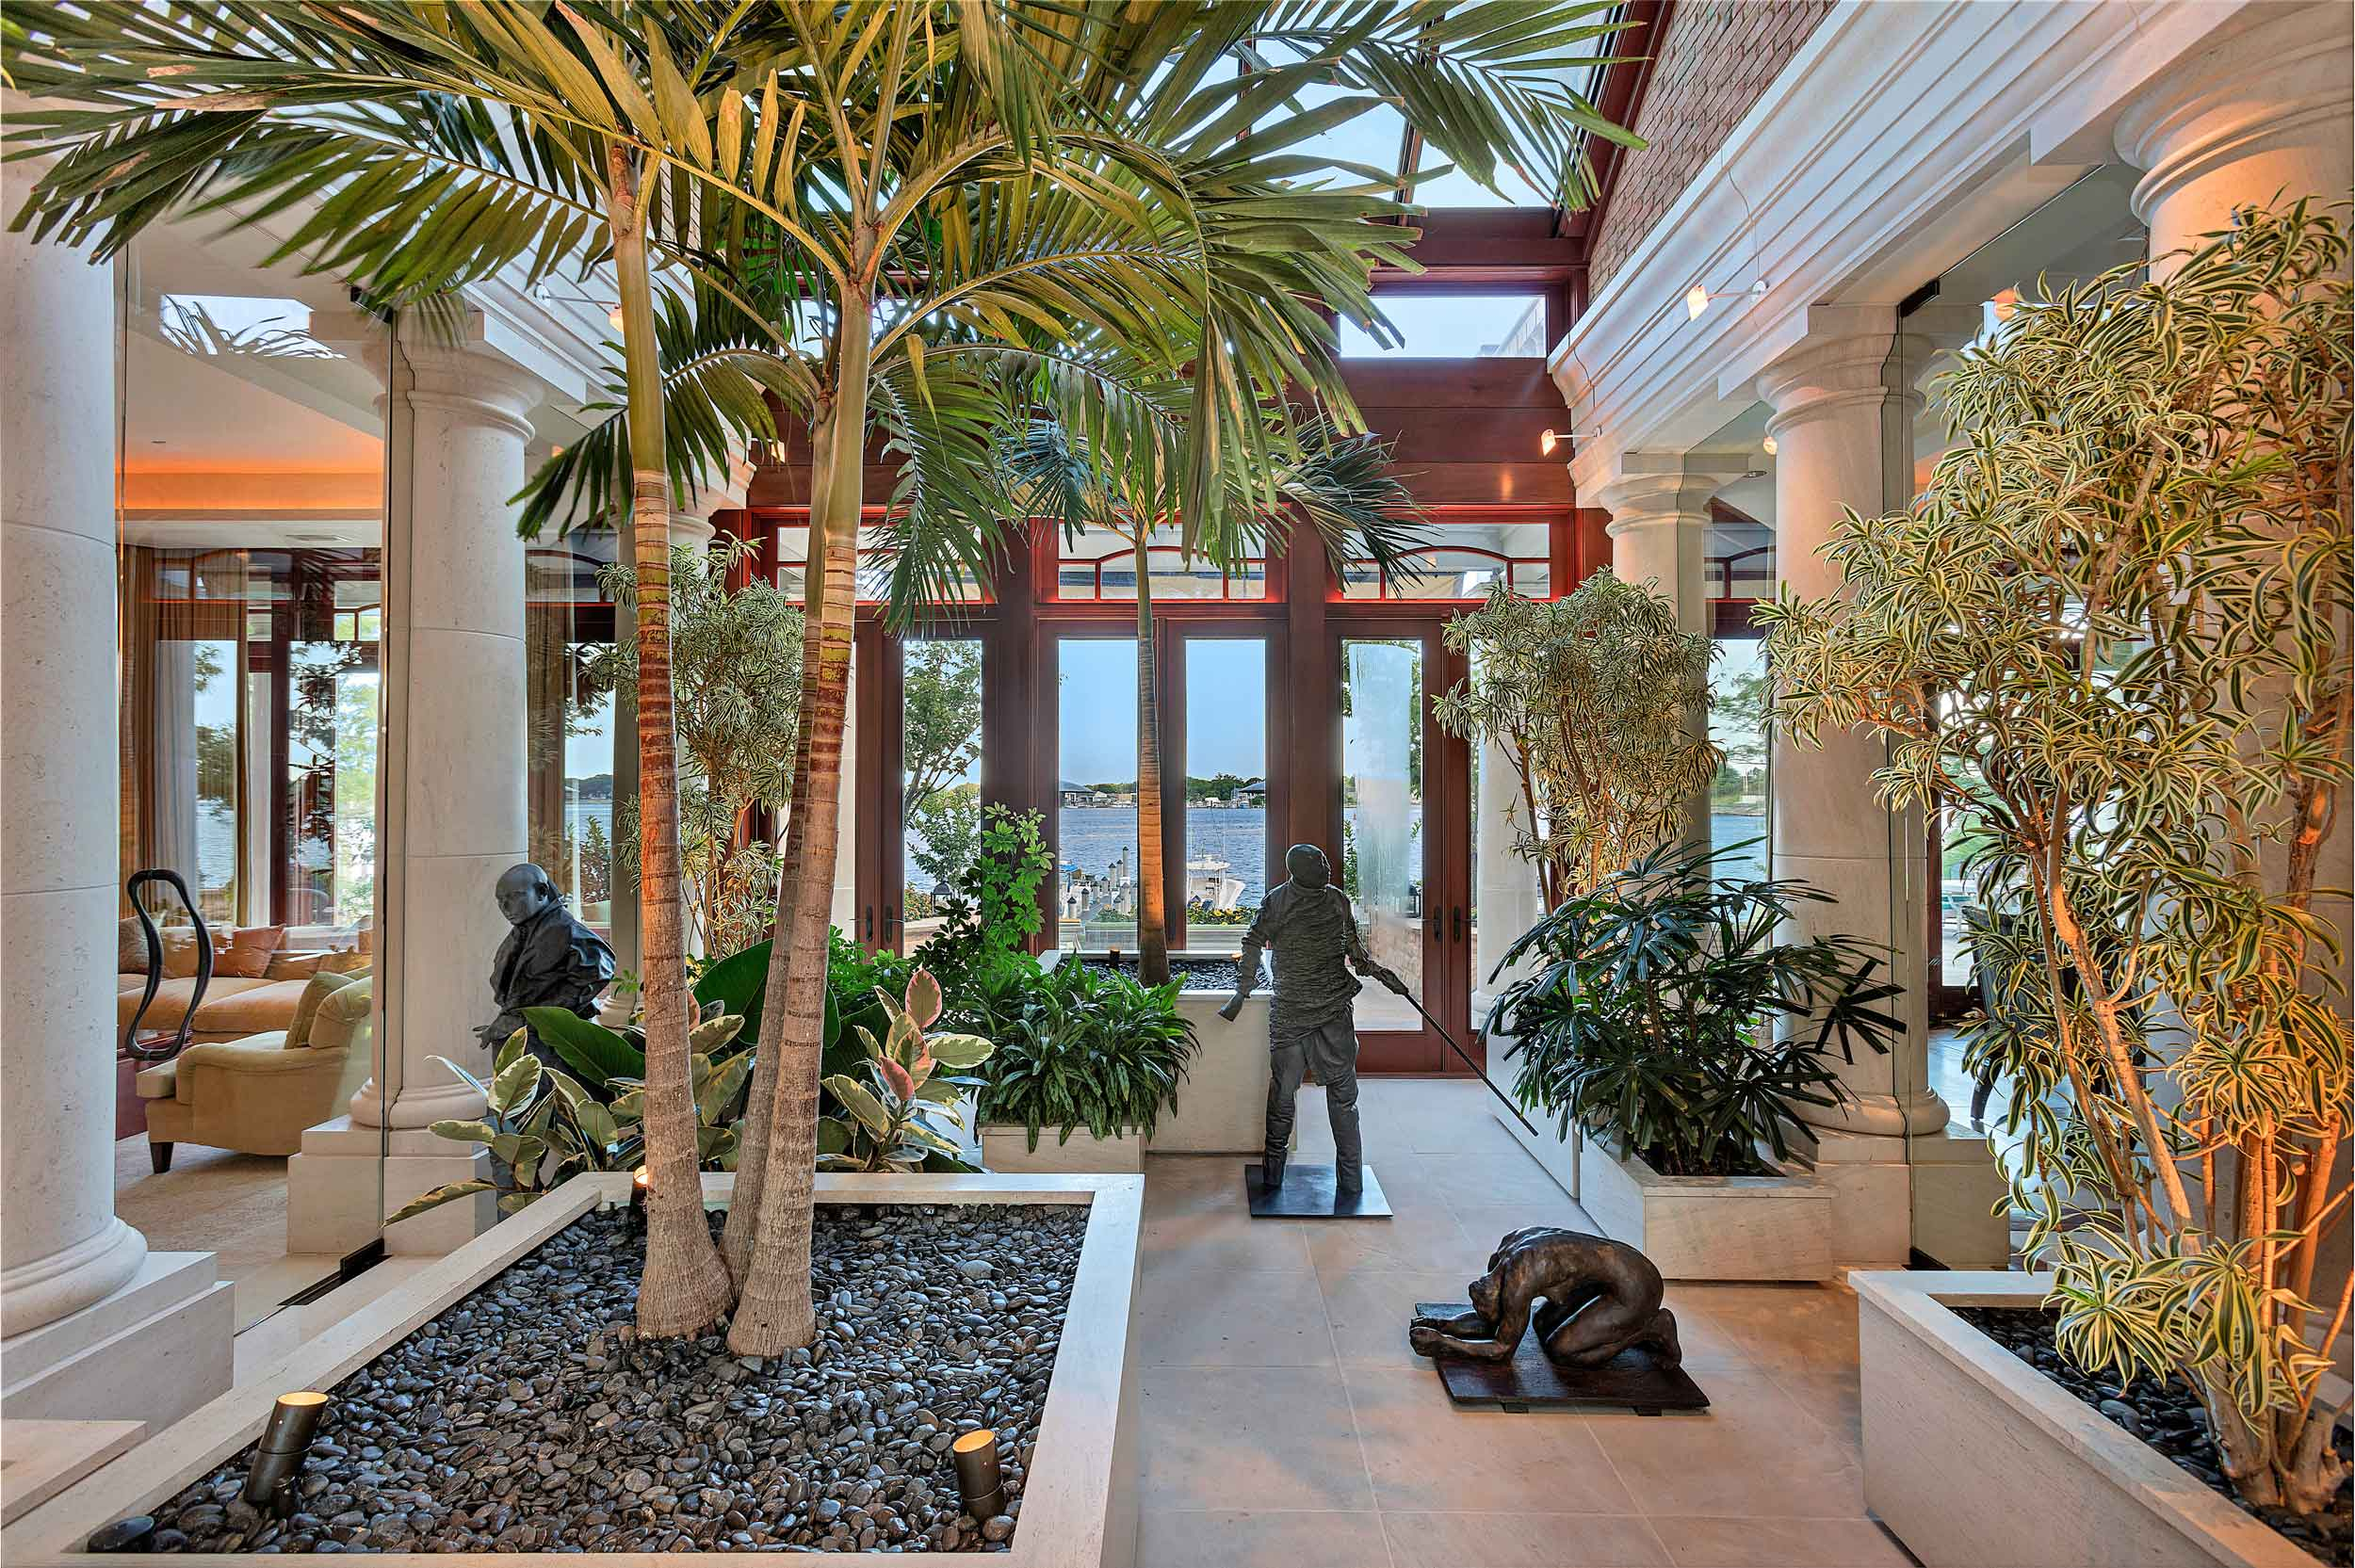 The Japanese-style garden, housed in a magnificent two-story atrium, provides a tranquil space to relax while enjoying the scenic beauty of the Manasquan River.